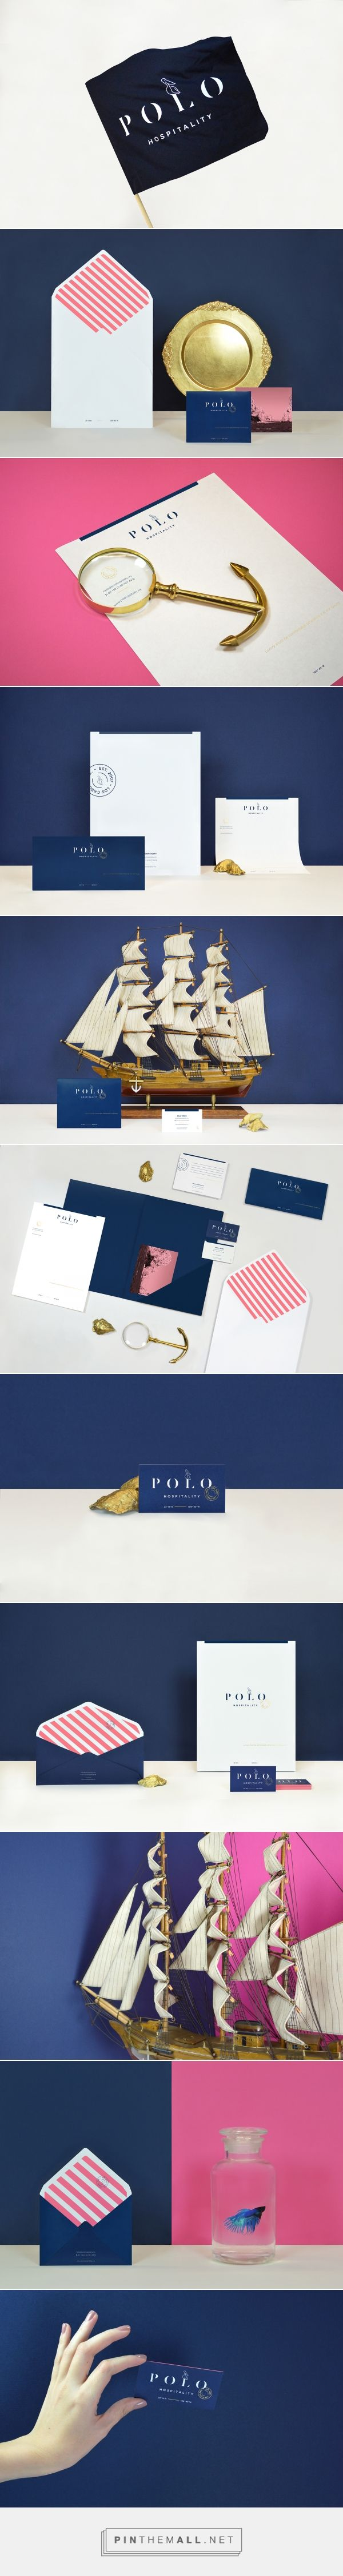 POLO HOSPITALITY by Open Studio by K on Behance | Fivestar Branding – Design and Branding Agency & Inspiration Gallery